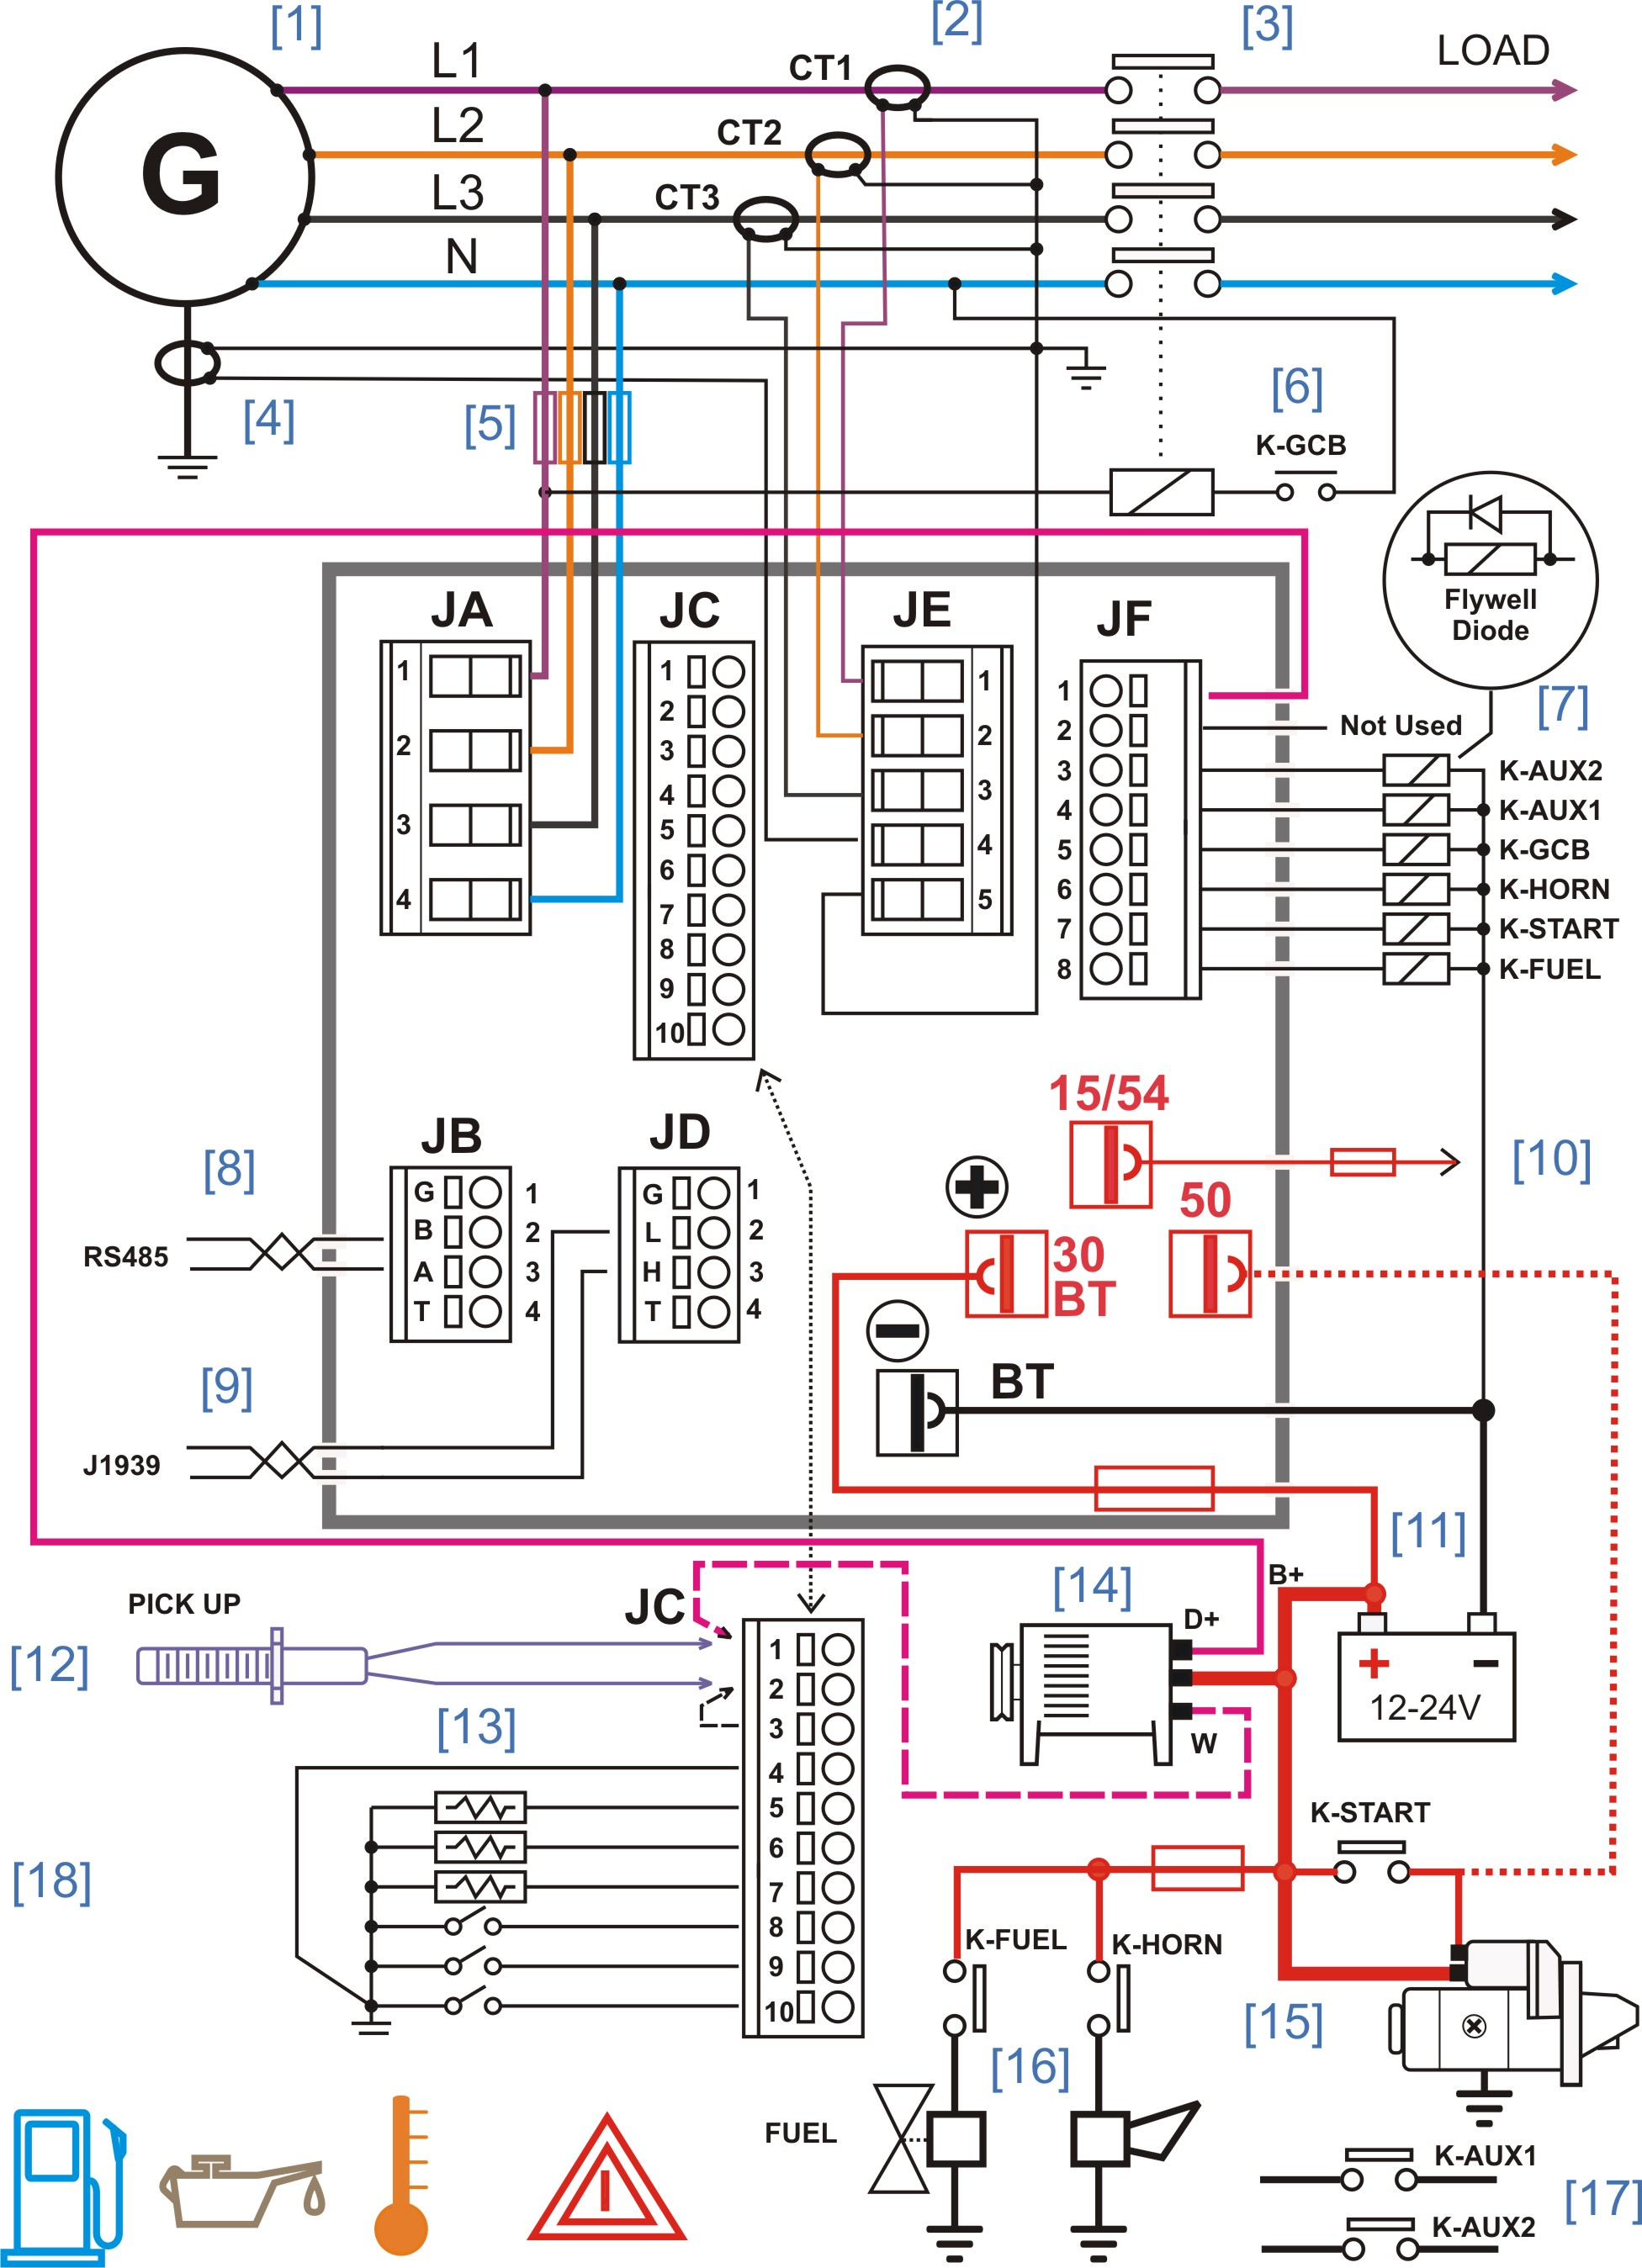 Diesel Generator Control Panel Wiring Diagram plc control panel wiring diagram generator wiring diagram \u2022 wiring how to read plc wiring diagrams at nearapp.co